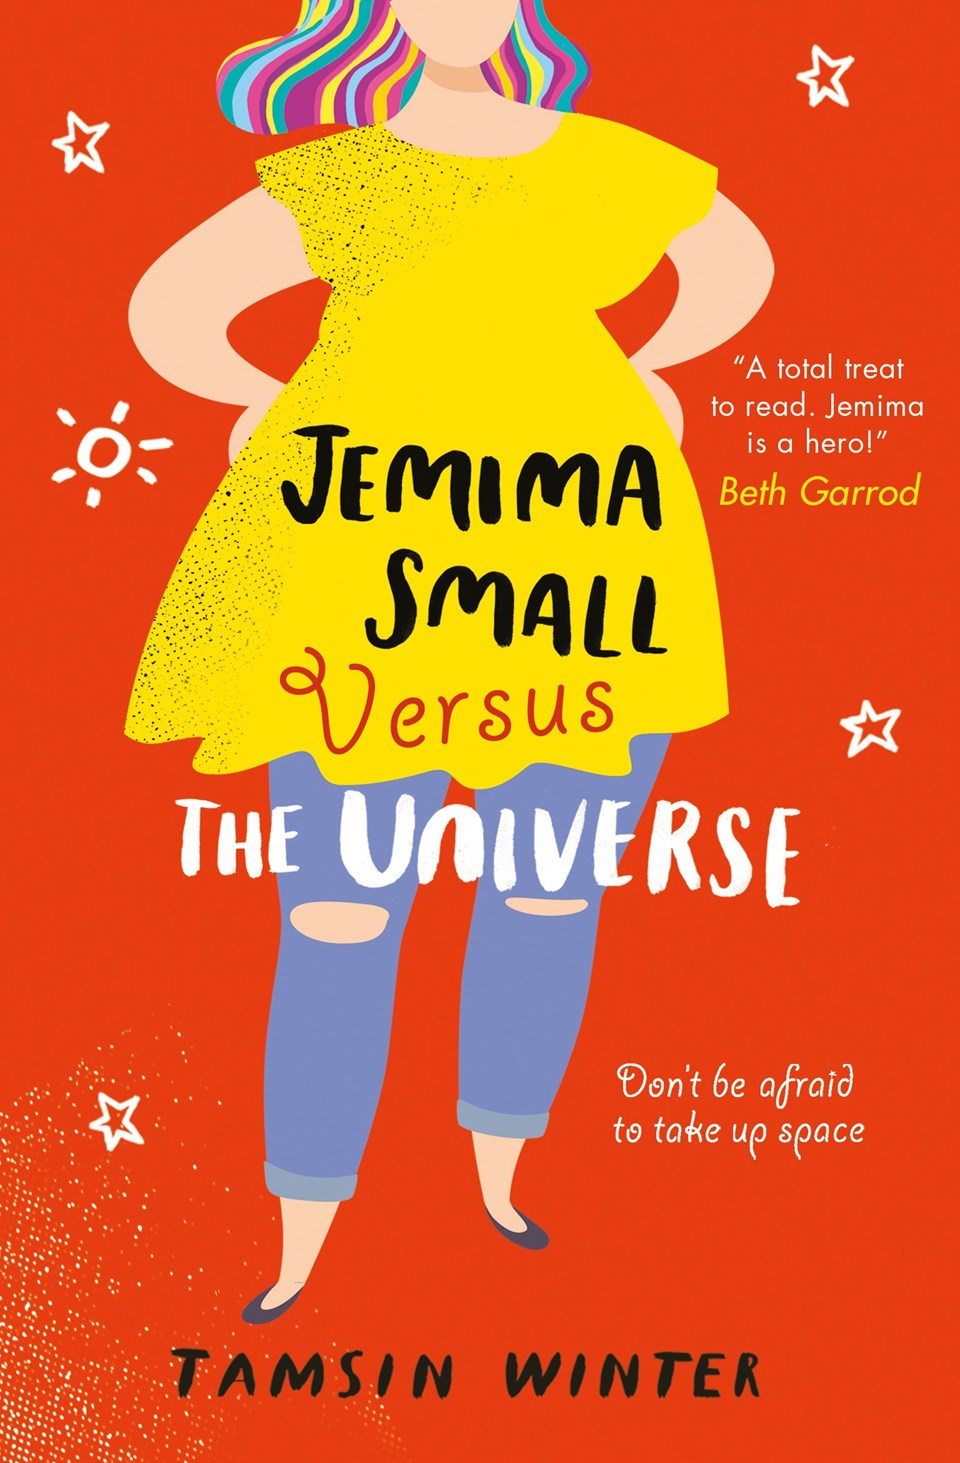 Book Review : Jemima Small Versus the Universe by Tamsin Winter